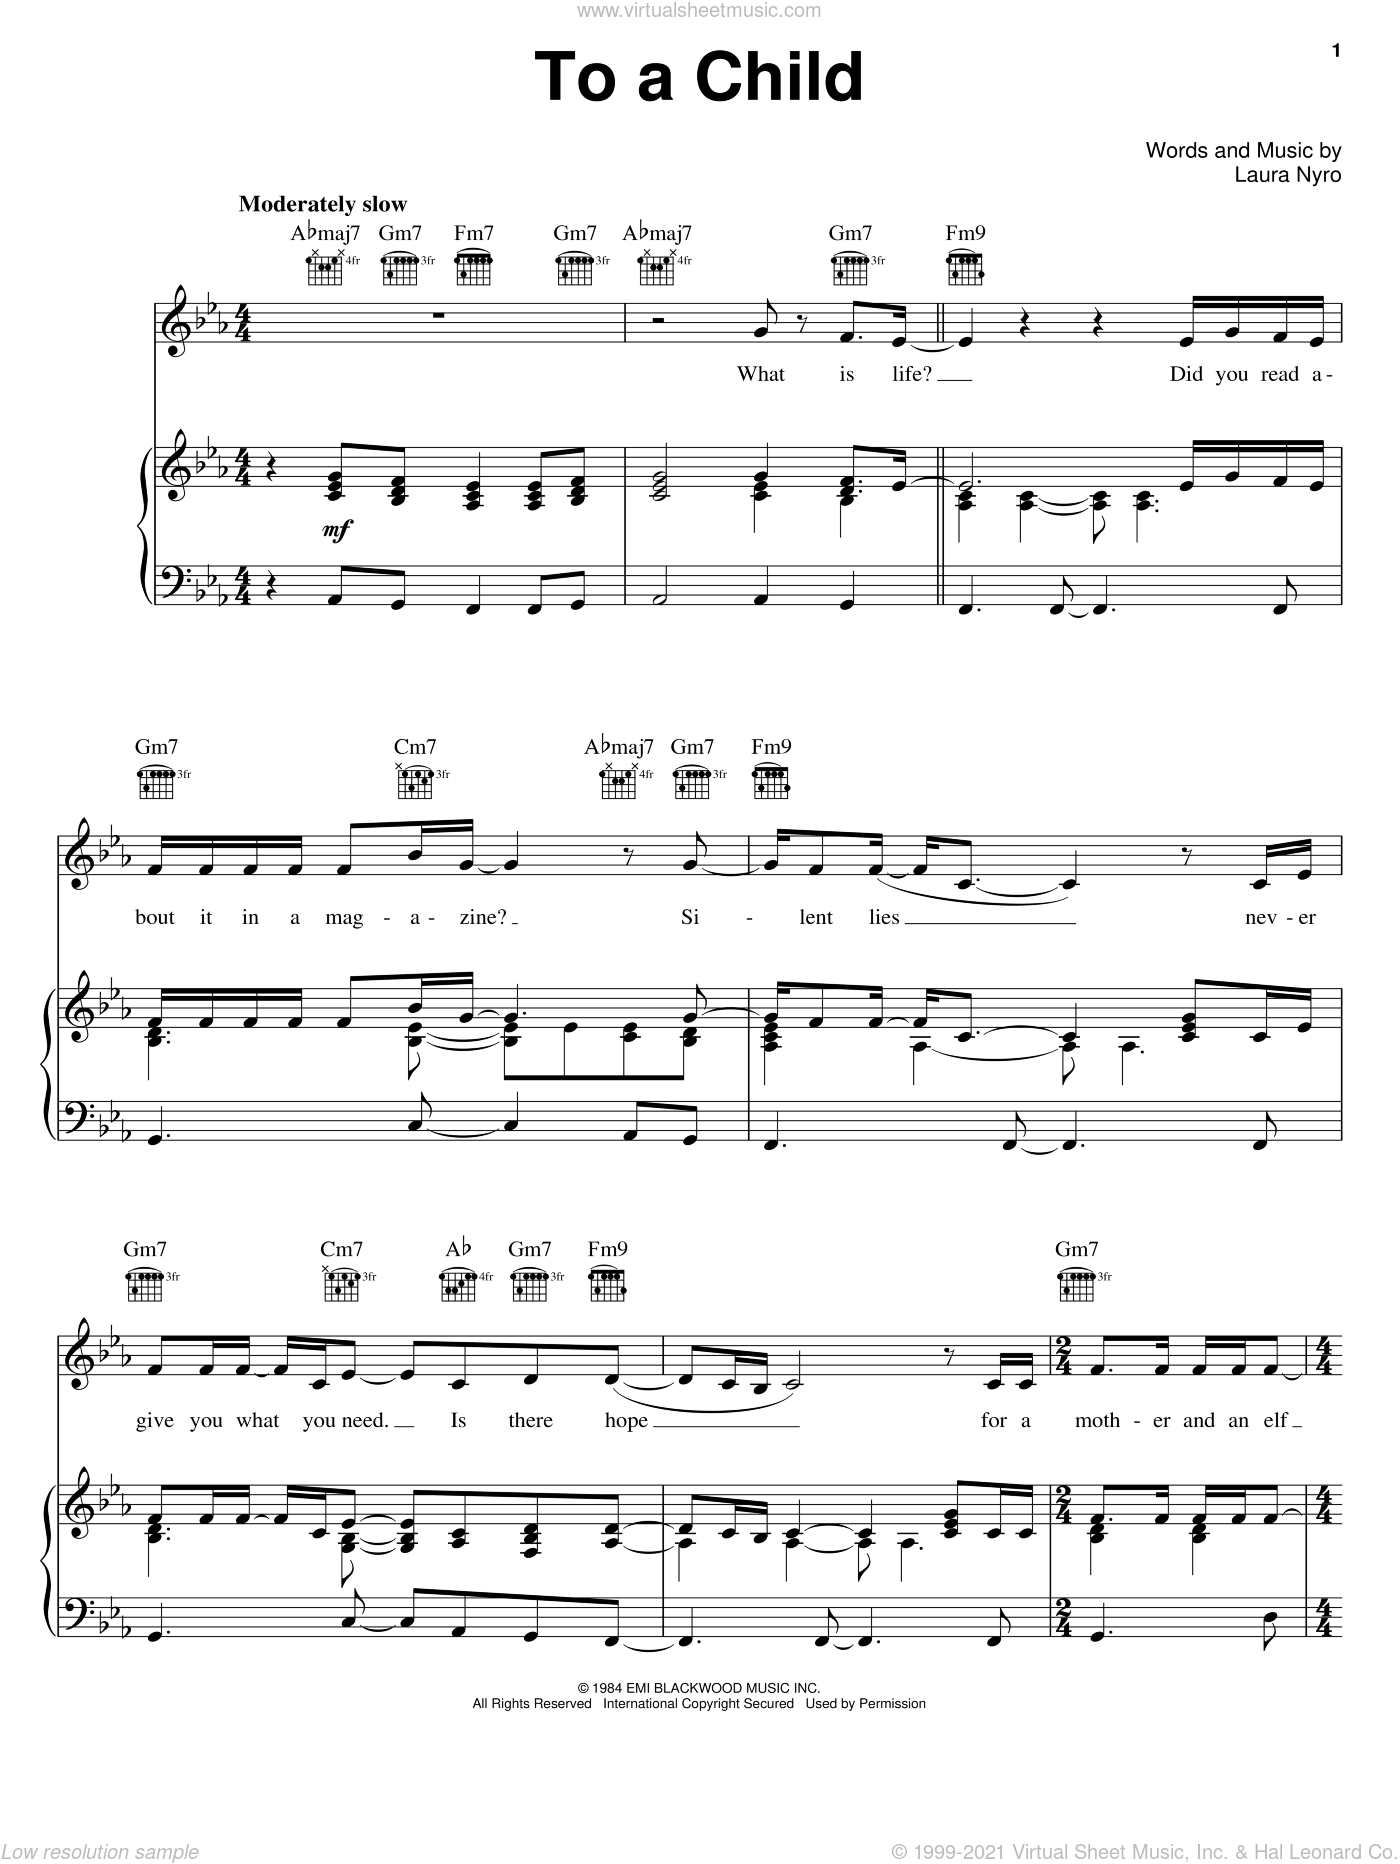 To A Child sheet music for voice, piano or guitar by Laura Nyro, intermediate skill level